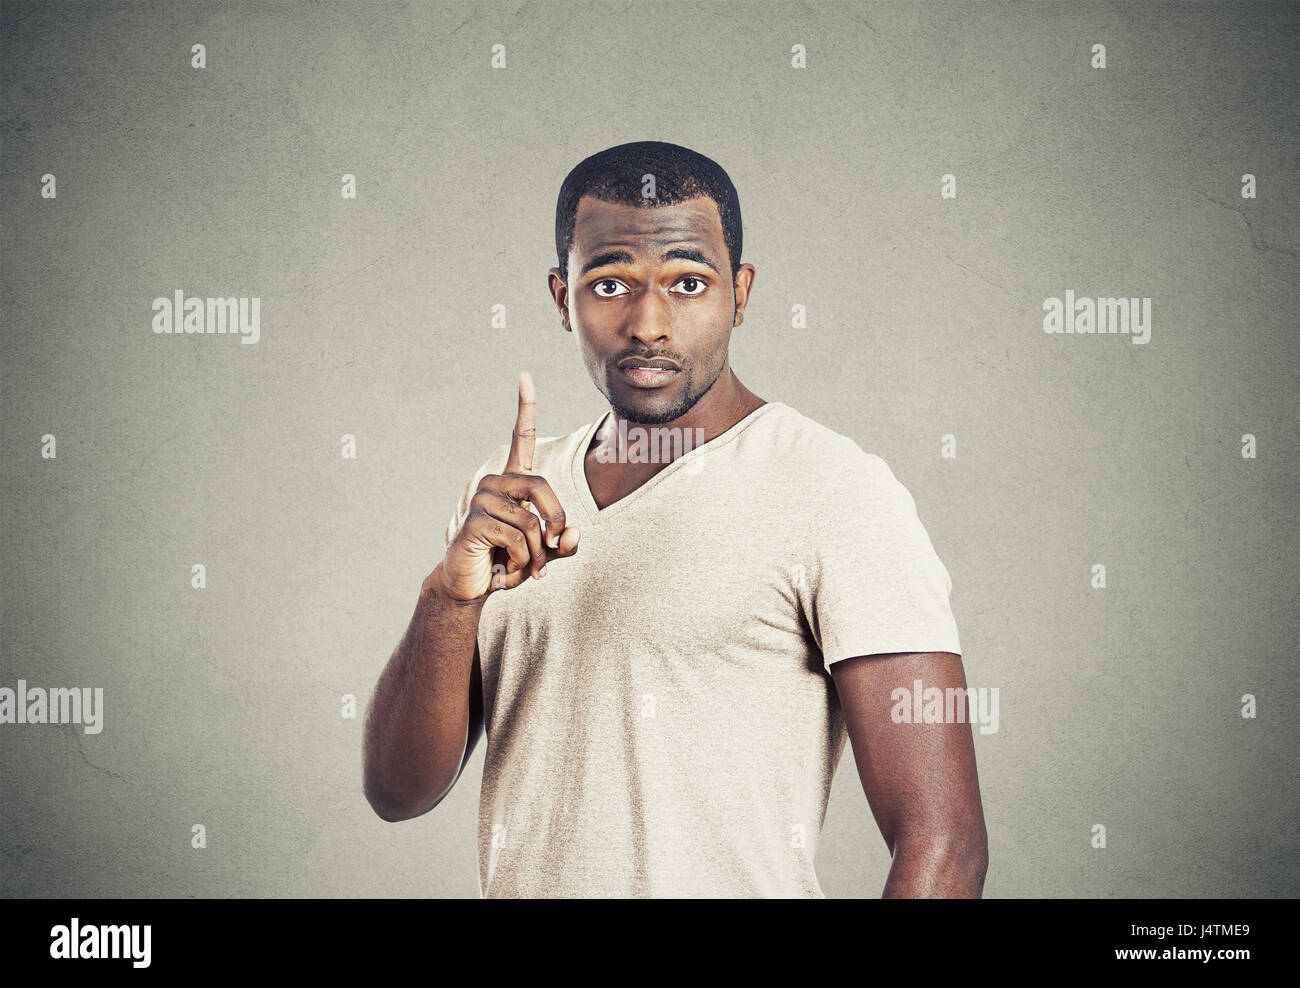 Closeup portrait young man pointing up having idea, solution, showing with index finger number one isolated grey - Stock Image